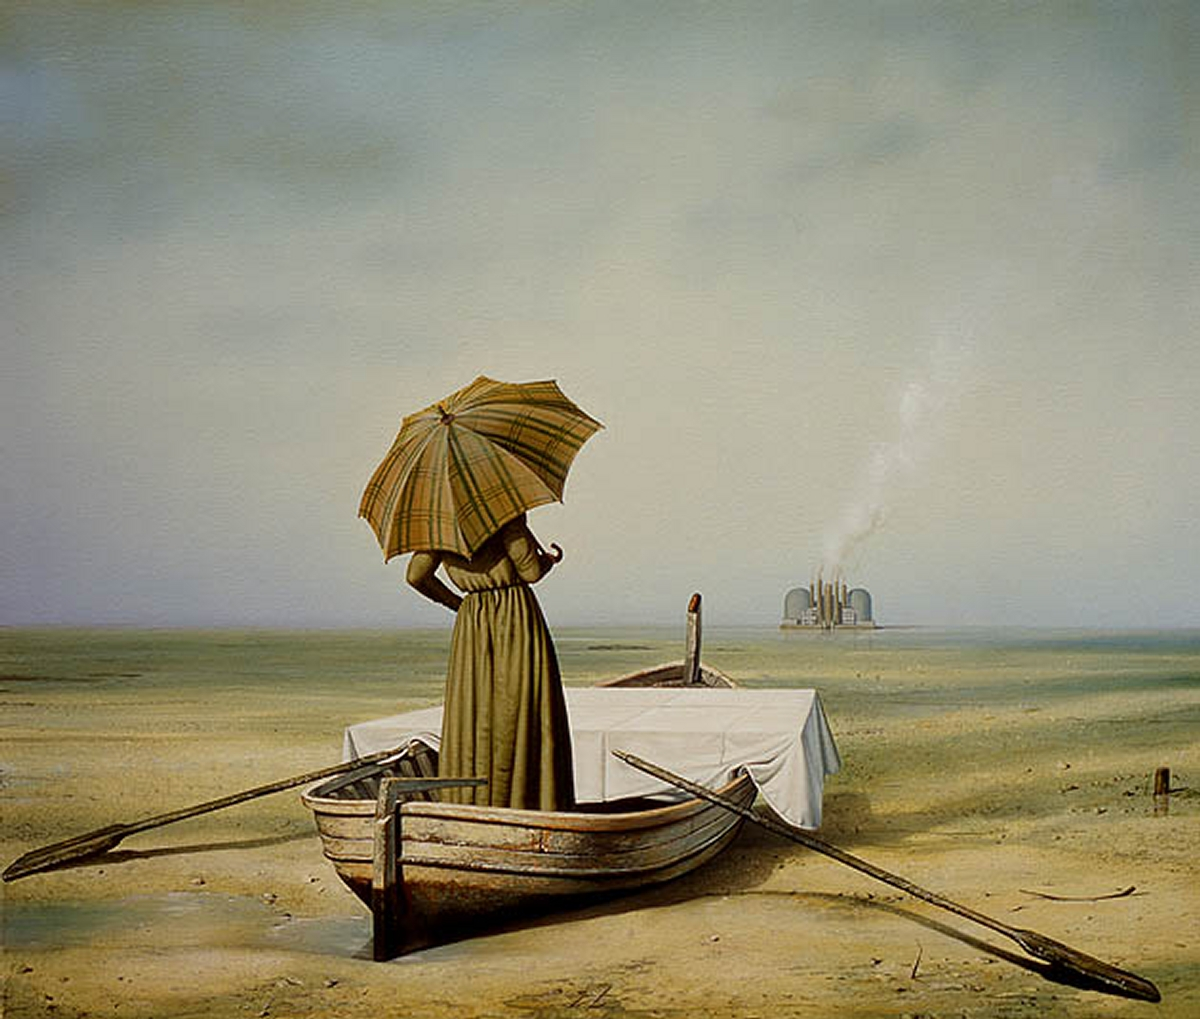 04-Böcklins-Island-of-Death-Displaced-Siegfried-Zademack-Surreal-Oil-Paintings-that-tell-us-a-Story-www-designstack-co